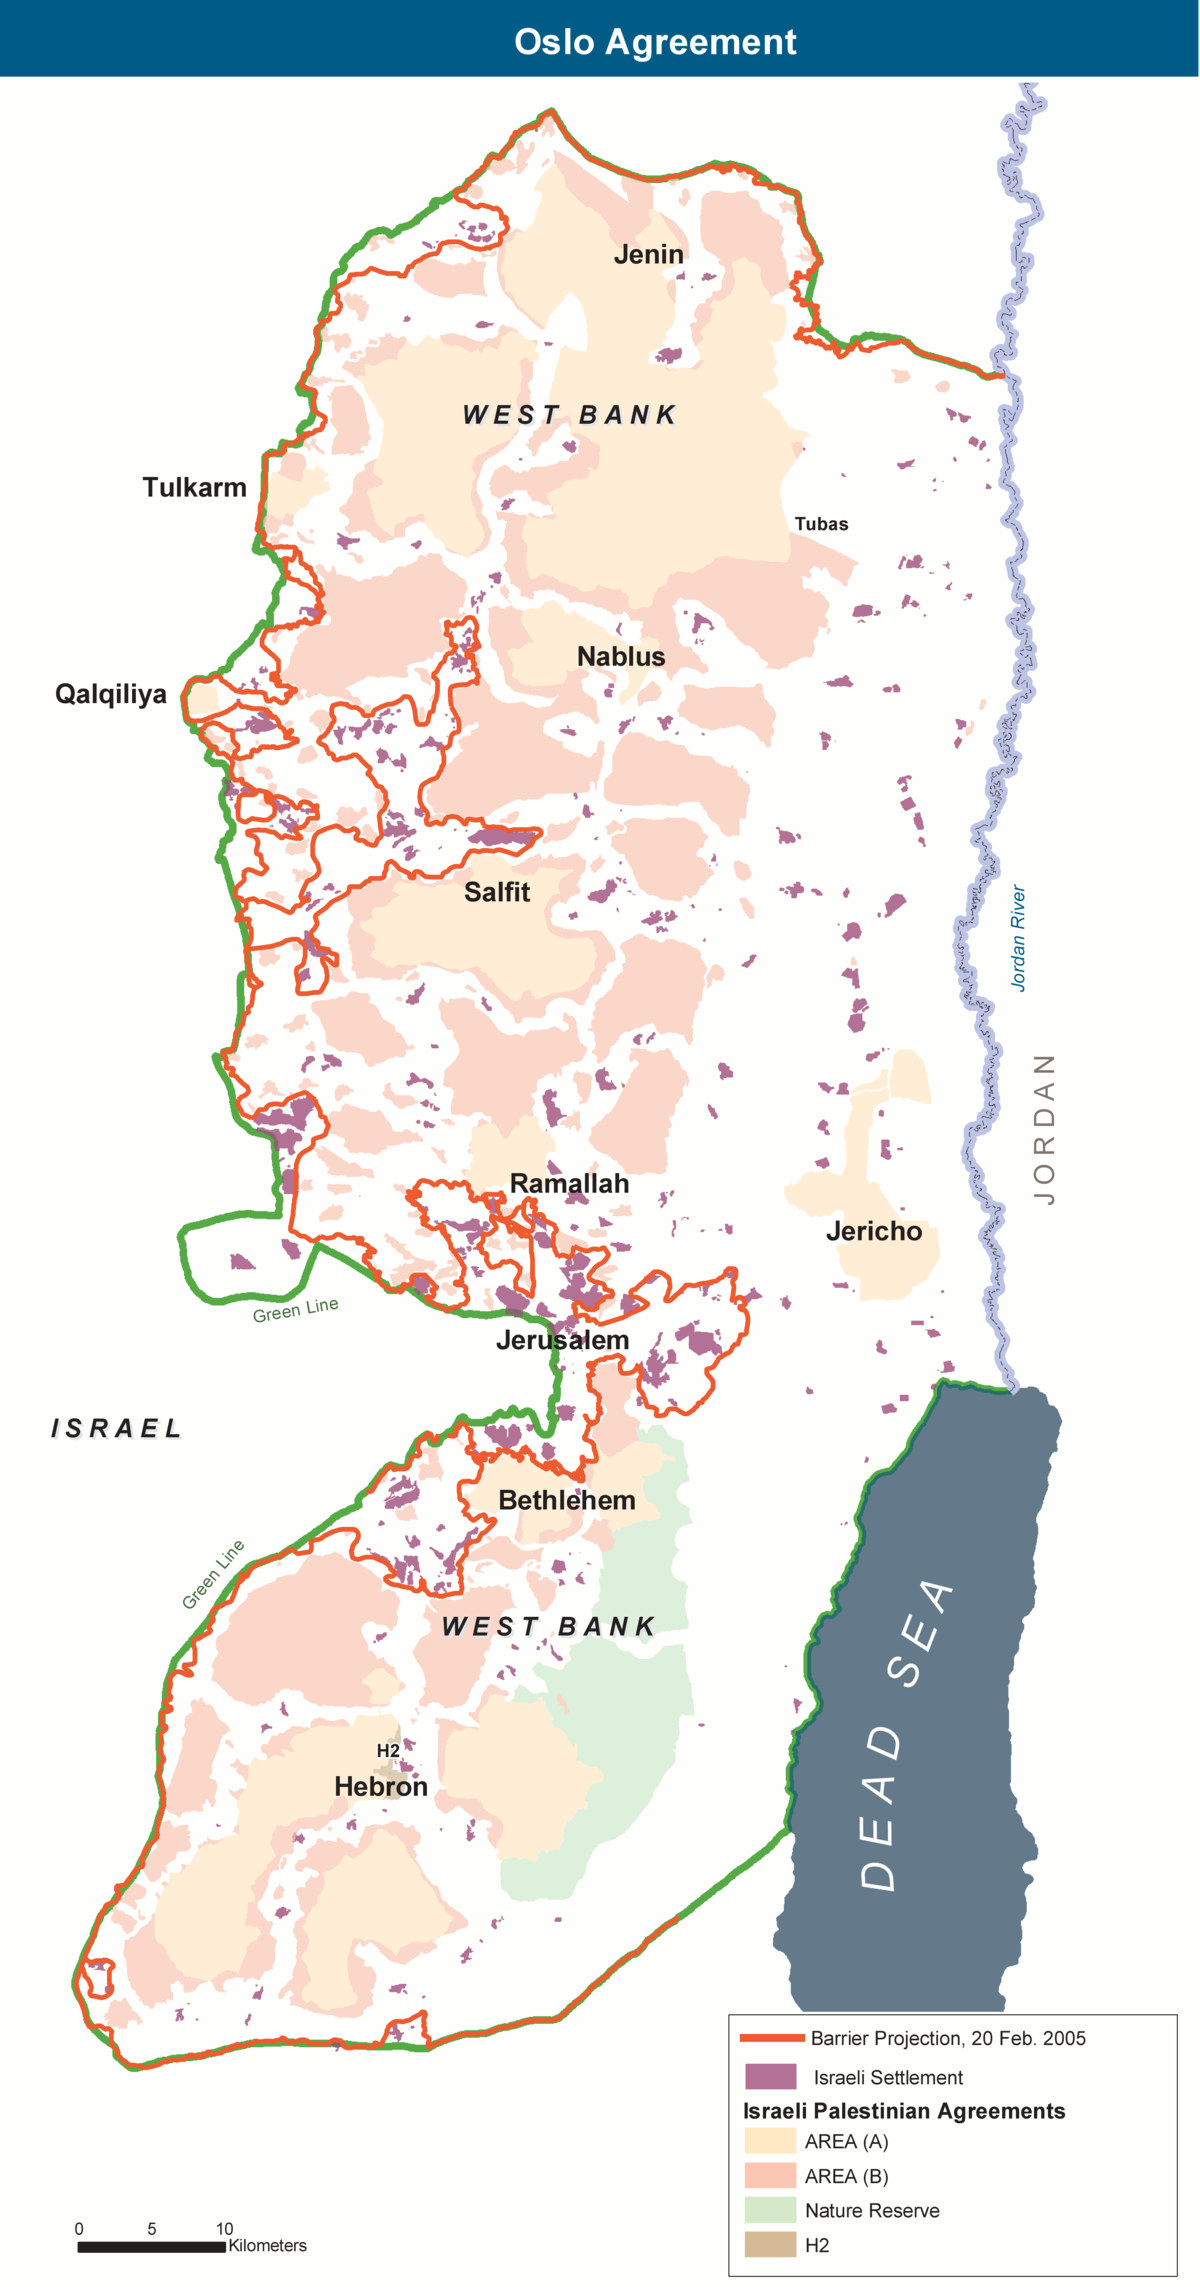 Israel And Palestine World Map.West Bank Areas In The Oslo Ii Accord Wikipedia